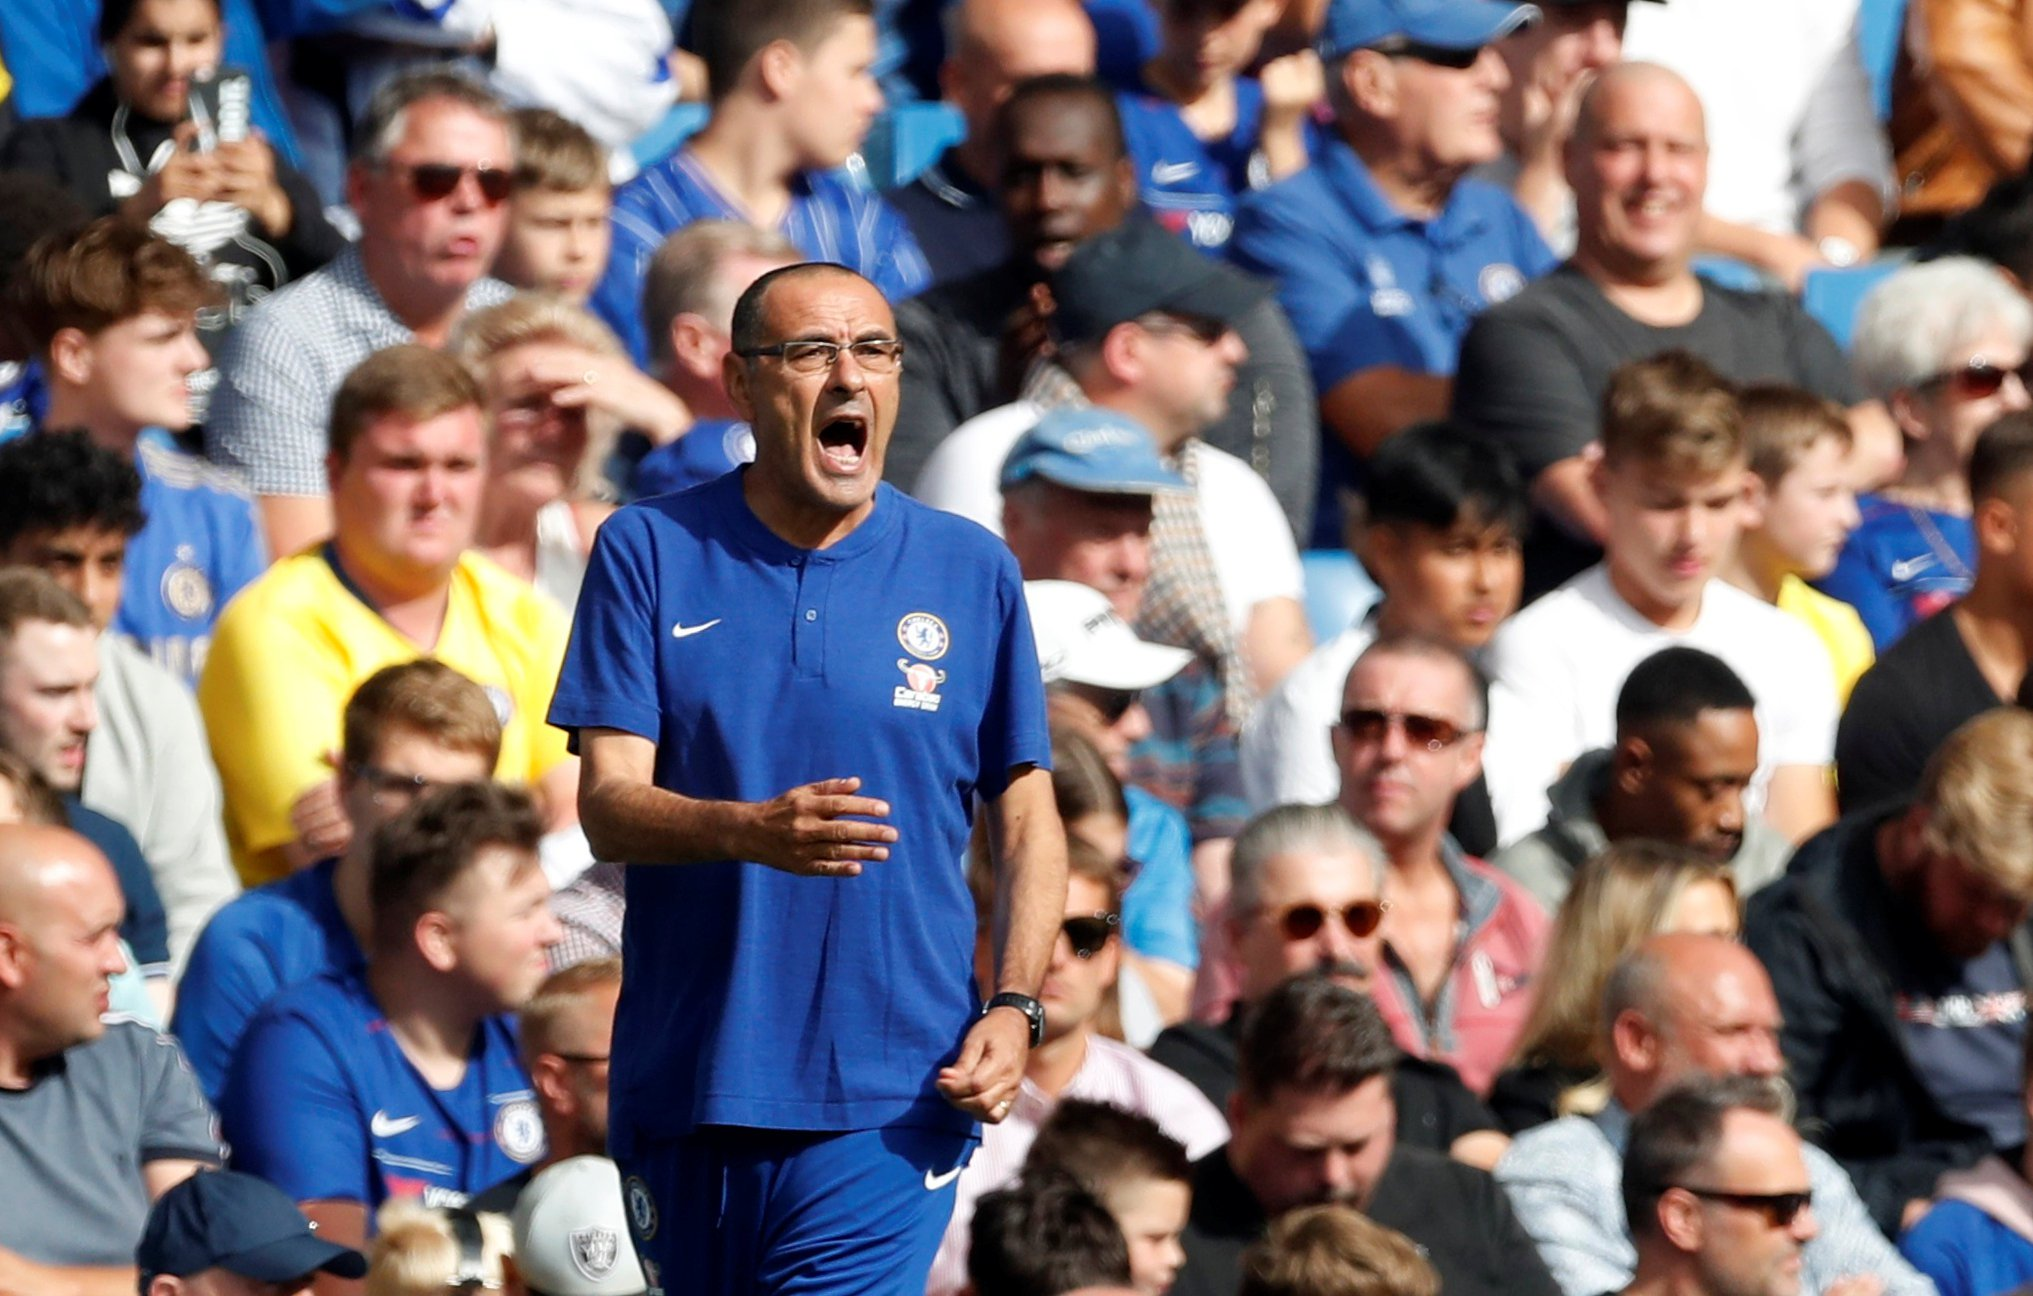 "Soccer Football - Premier League - Chelsea v Cardiff City - Stamford Bridge, London, Britain - September 15, 2018 Chelsea manager Maurizio Sarri reacts Action Images via Reuters/Matthew Childs EDITORIAL USE ONLY. No use with unauthorized audio, video, data, fixture lists, club/league logos or ""live"" services. Online in-match use limited to 75 images, no video emulation. No use in betting, games or single club/league/player publications. Please contact your account representative for further details."